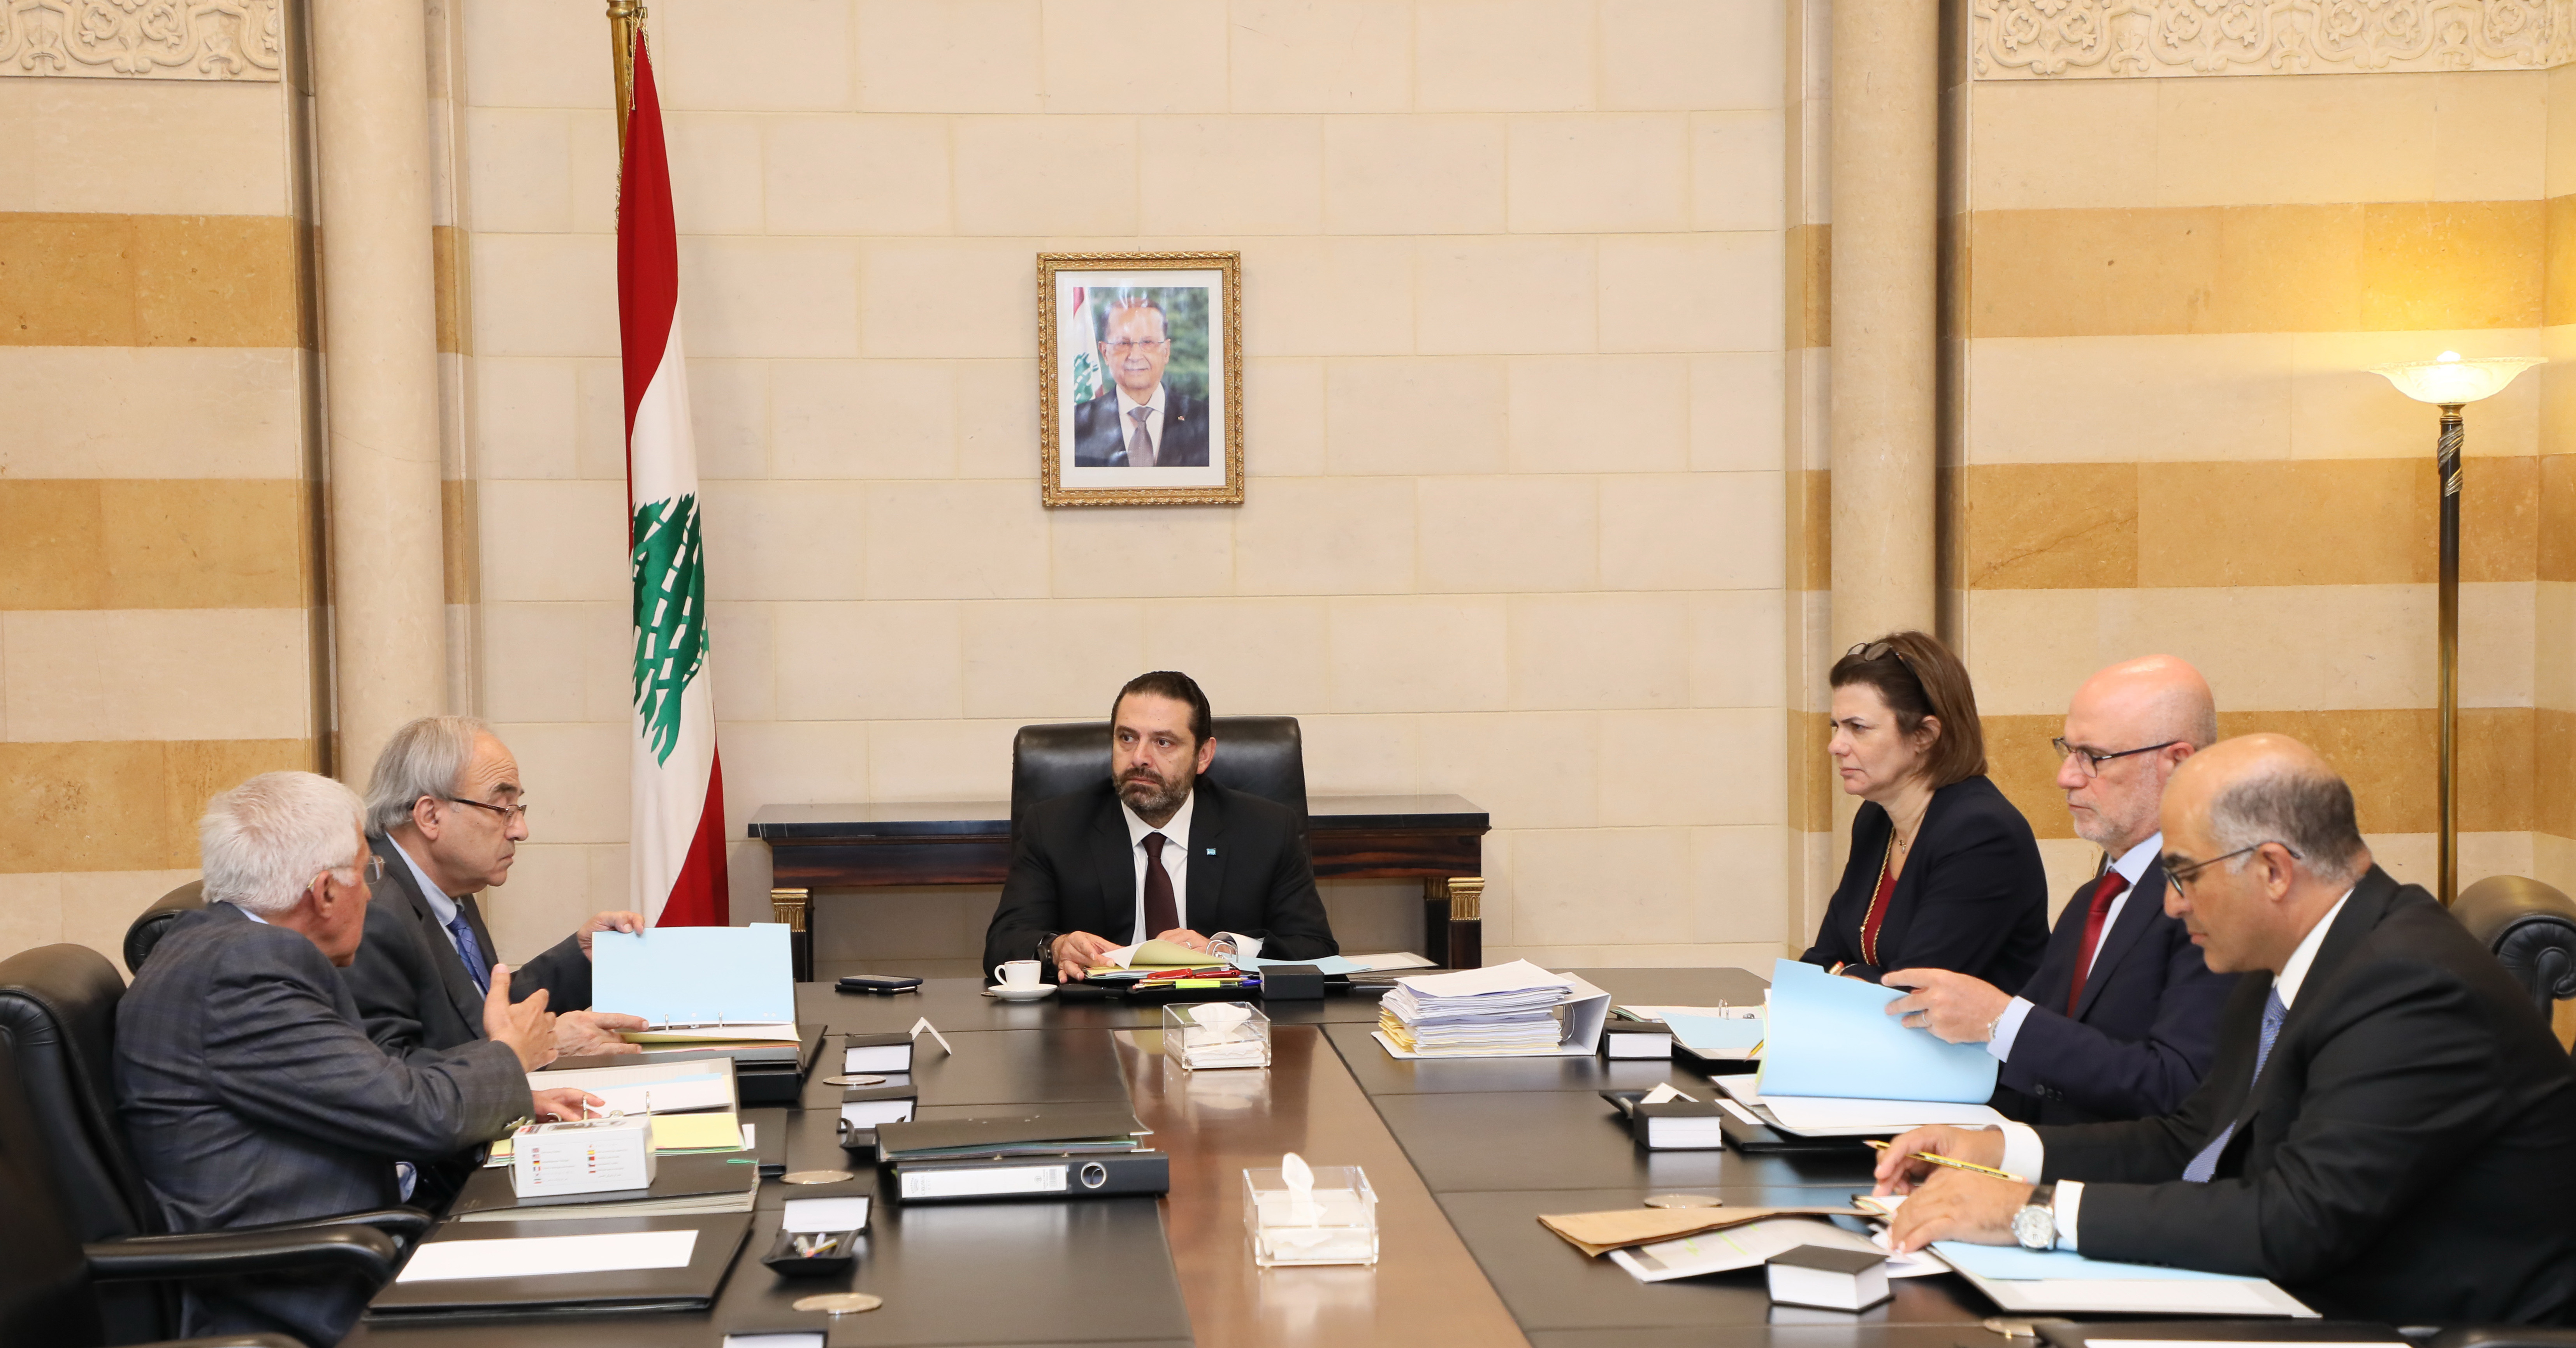 Pr Minister Saad Hariri Heading the National Safety Council Committee